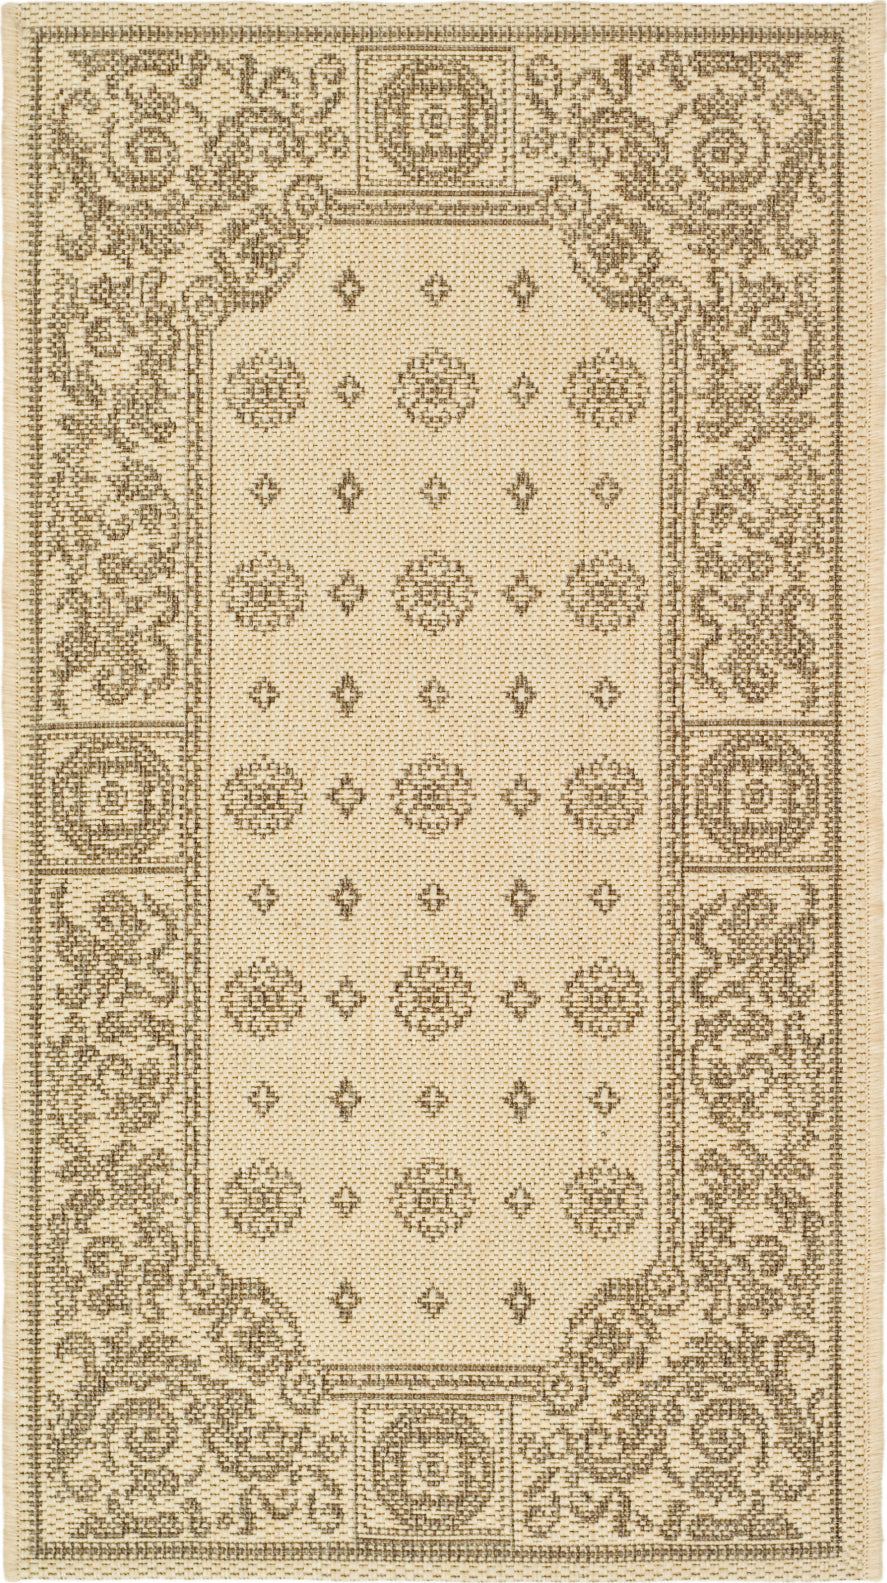 Safavieh Courtyard CY1356 Natural/Brown Area Rug main image